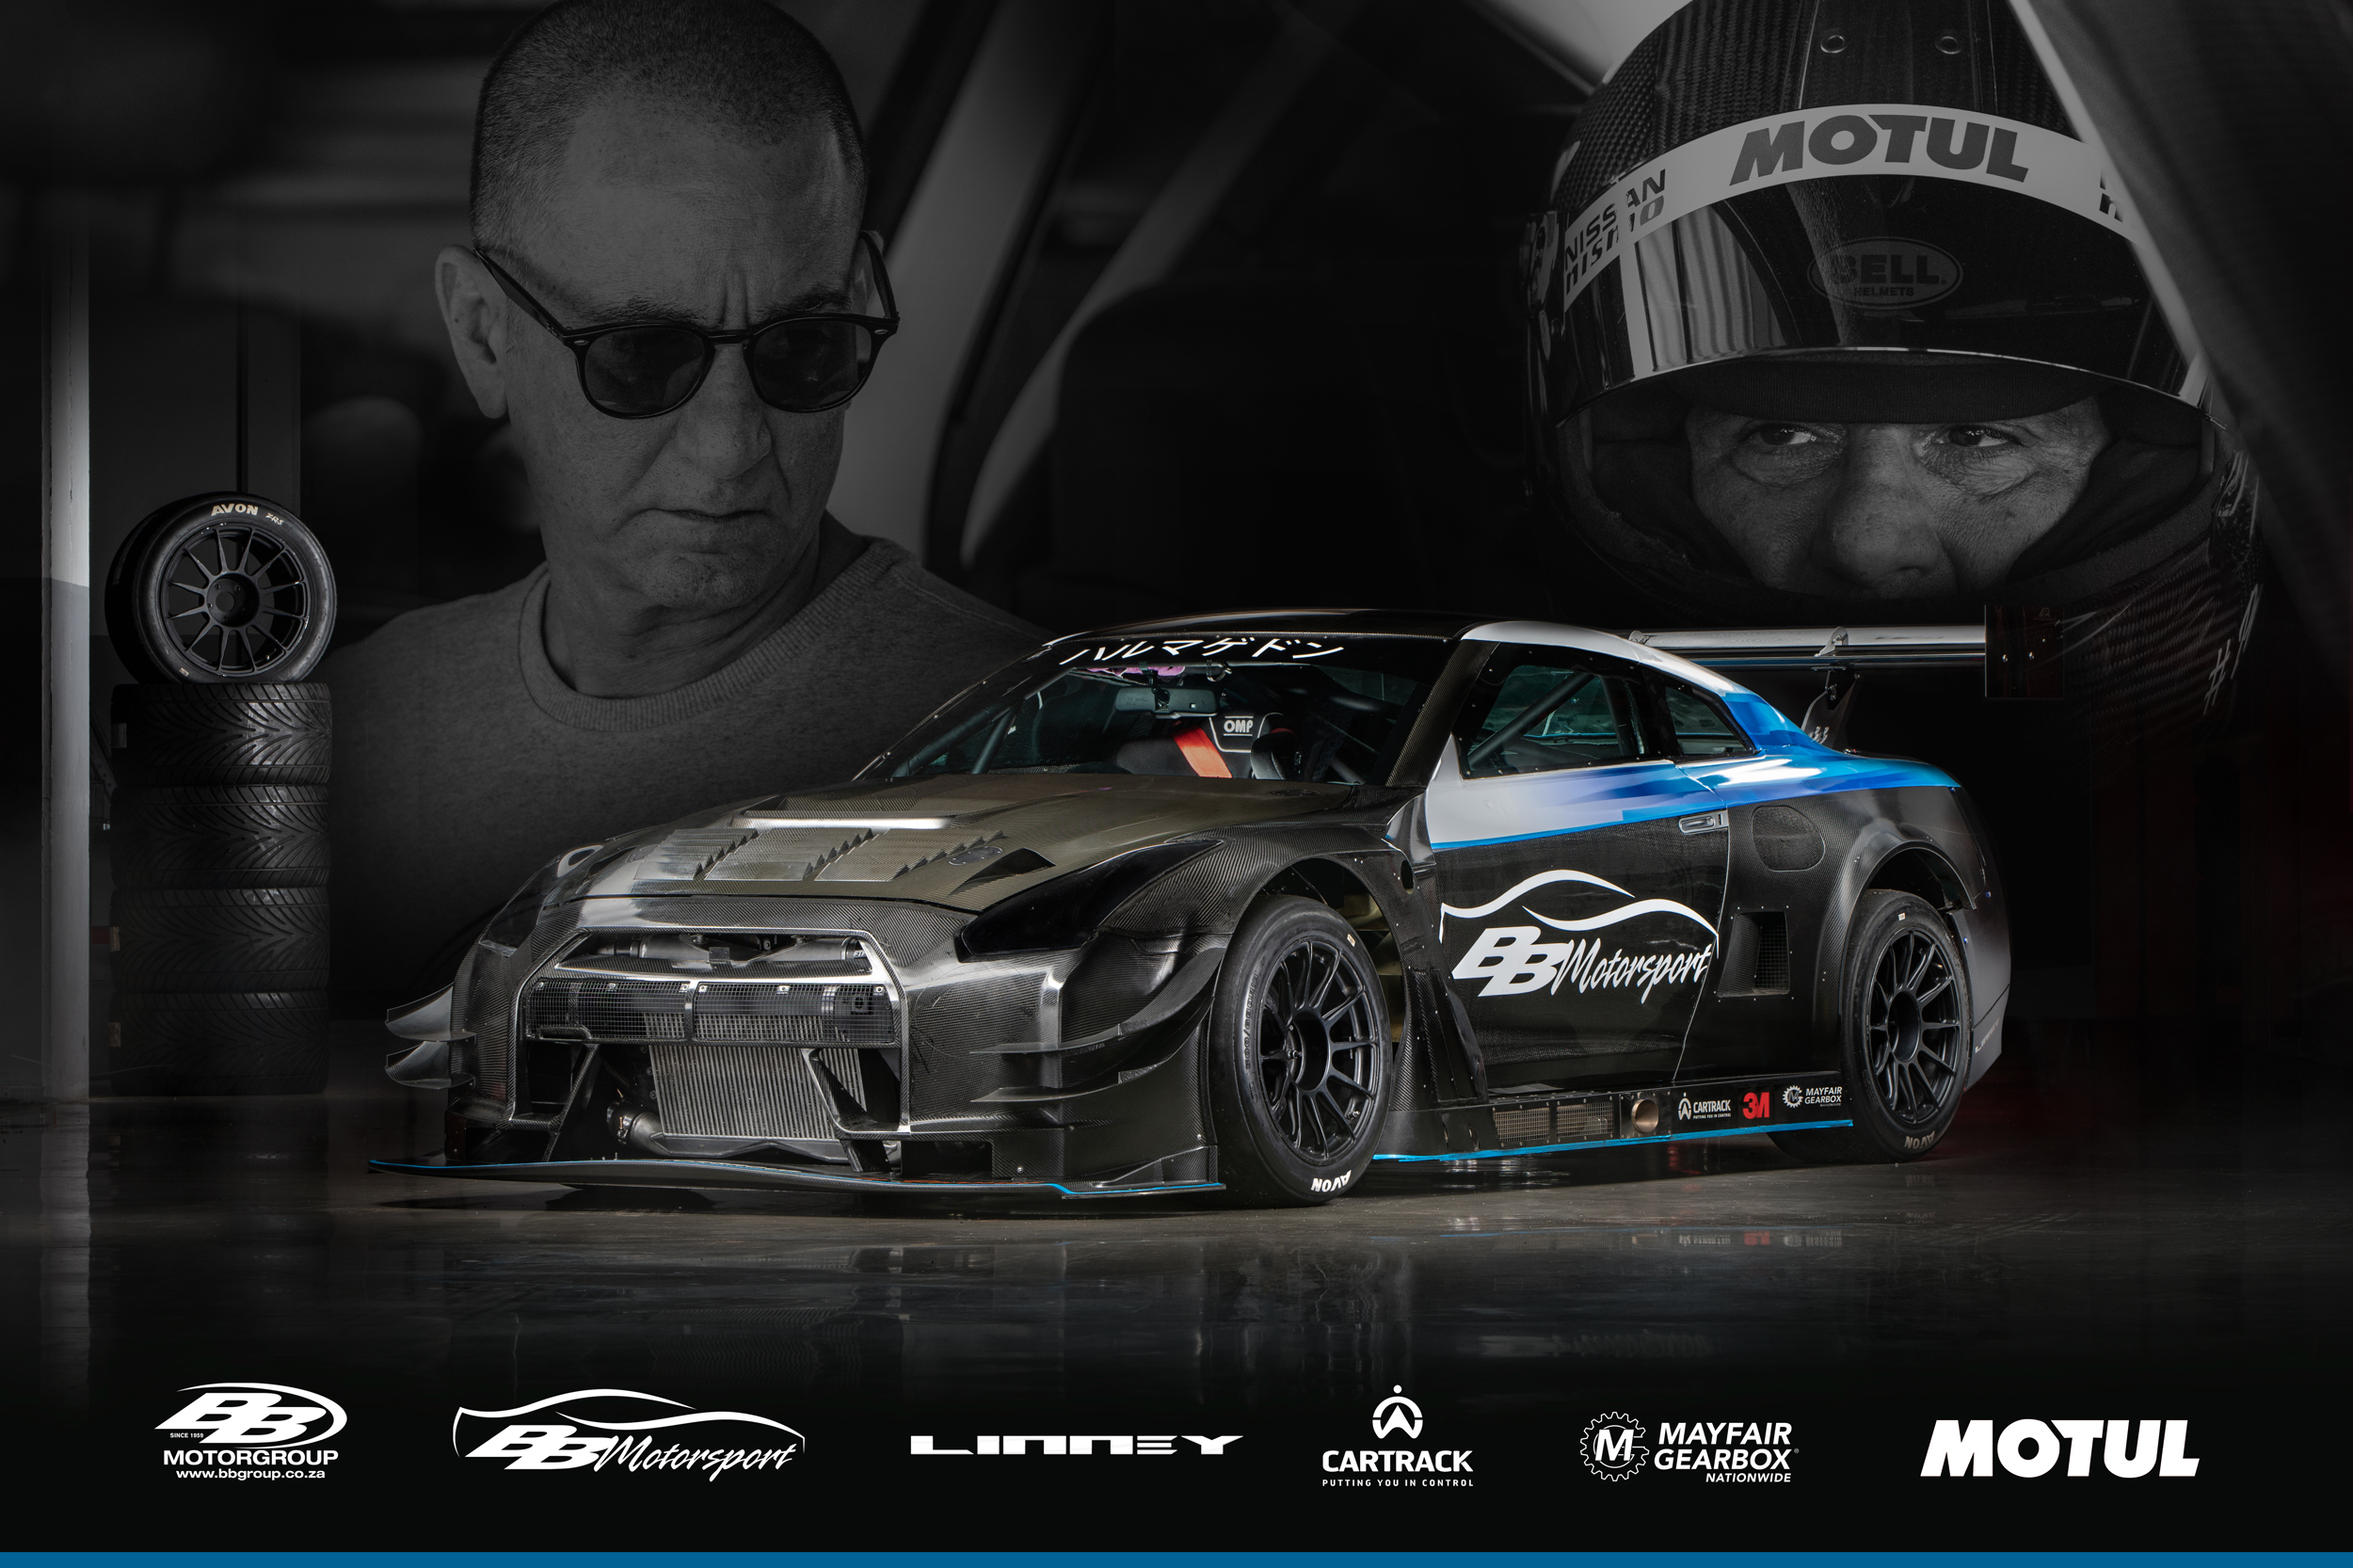 Poster for GT-R